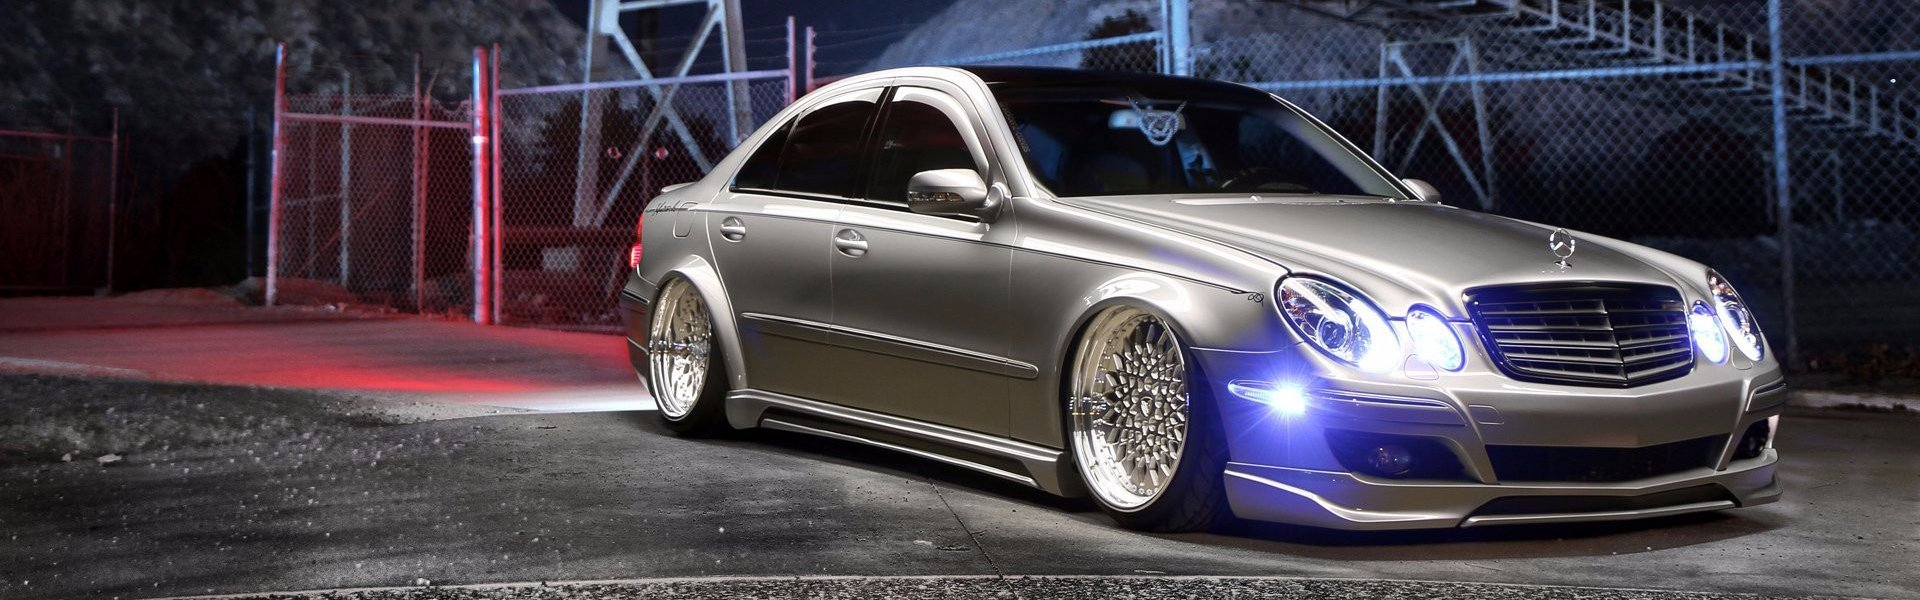 Mercedes-Benz E350 silver stance-тюнинг